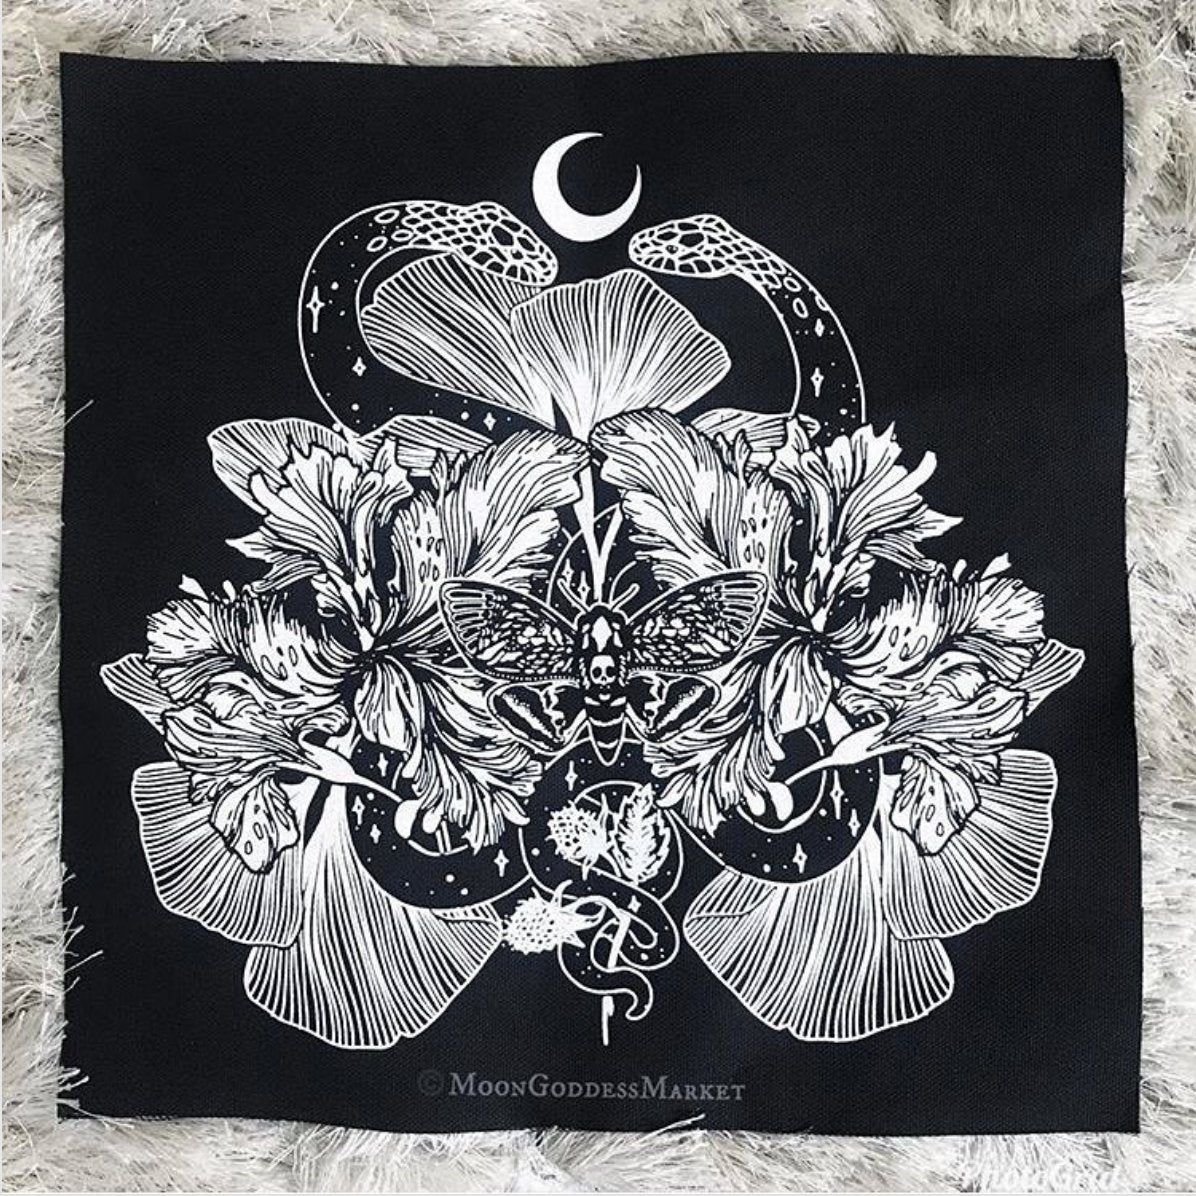 Celestial Garden Backpatch by Moon Goddess Market - Moon Goddess Market